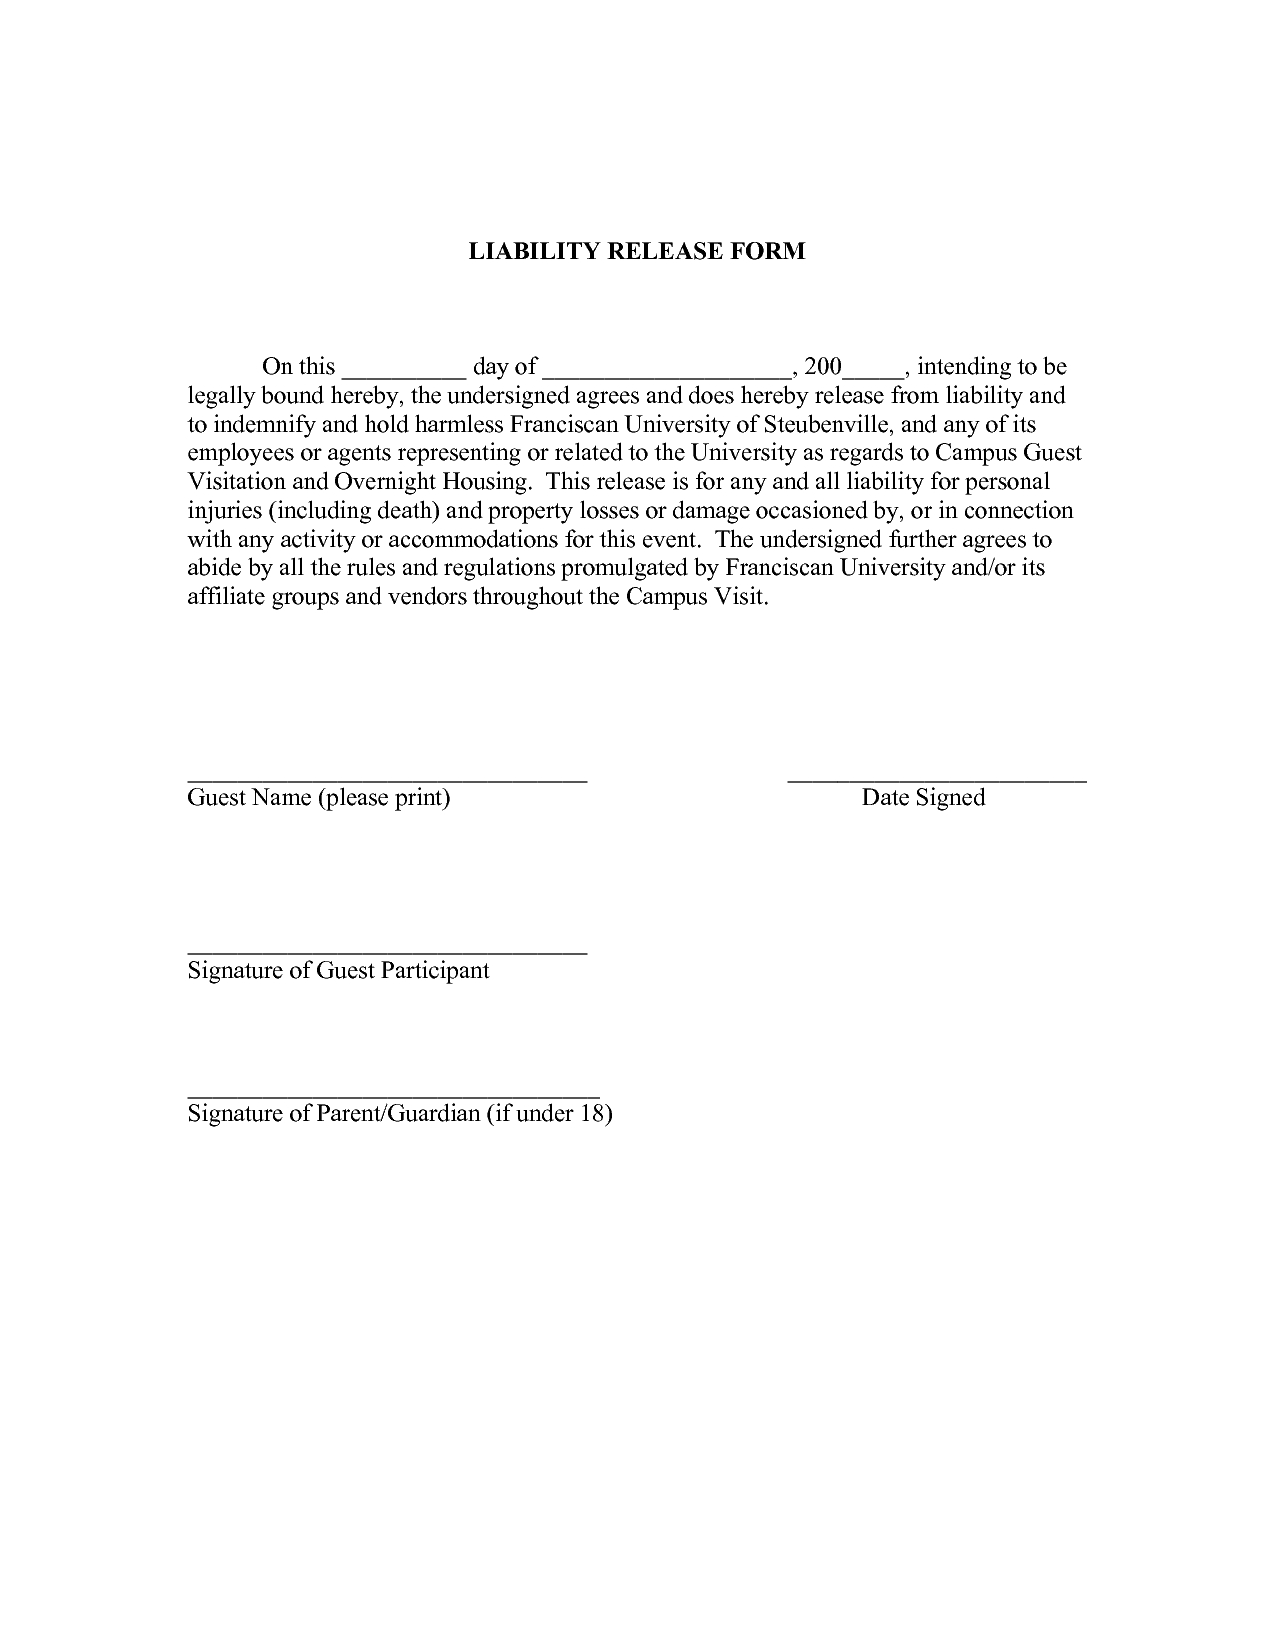 Printable Sample Liability Form Form | Legal Template In 2019 - Free Printable Legal Documents Forms